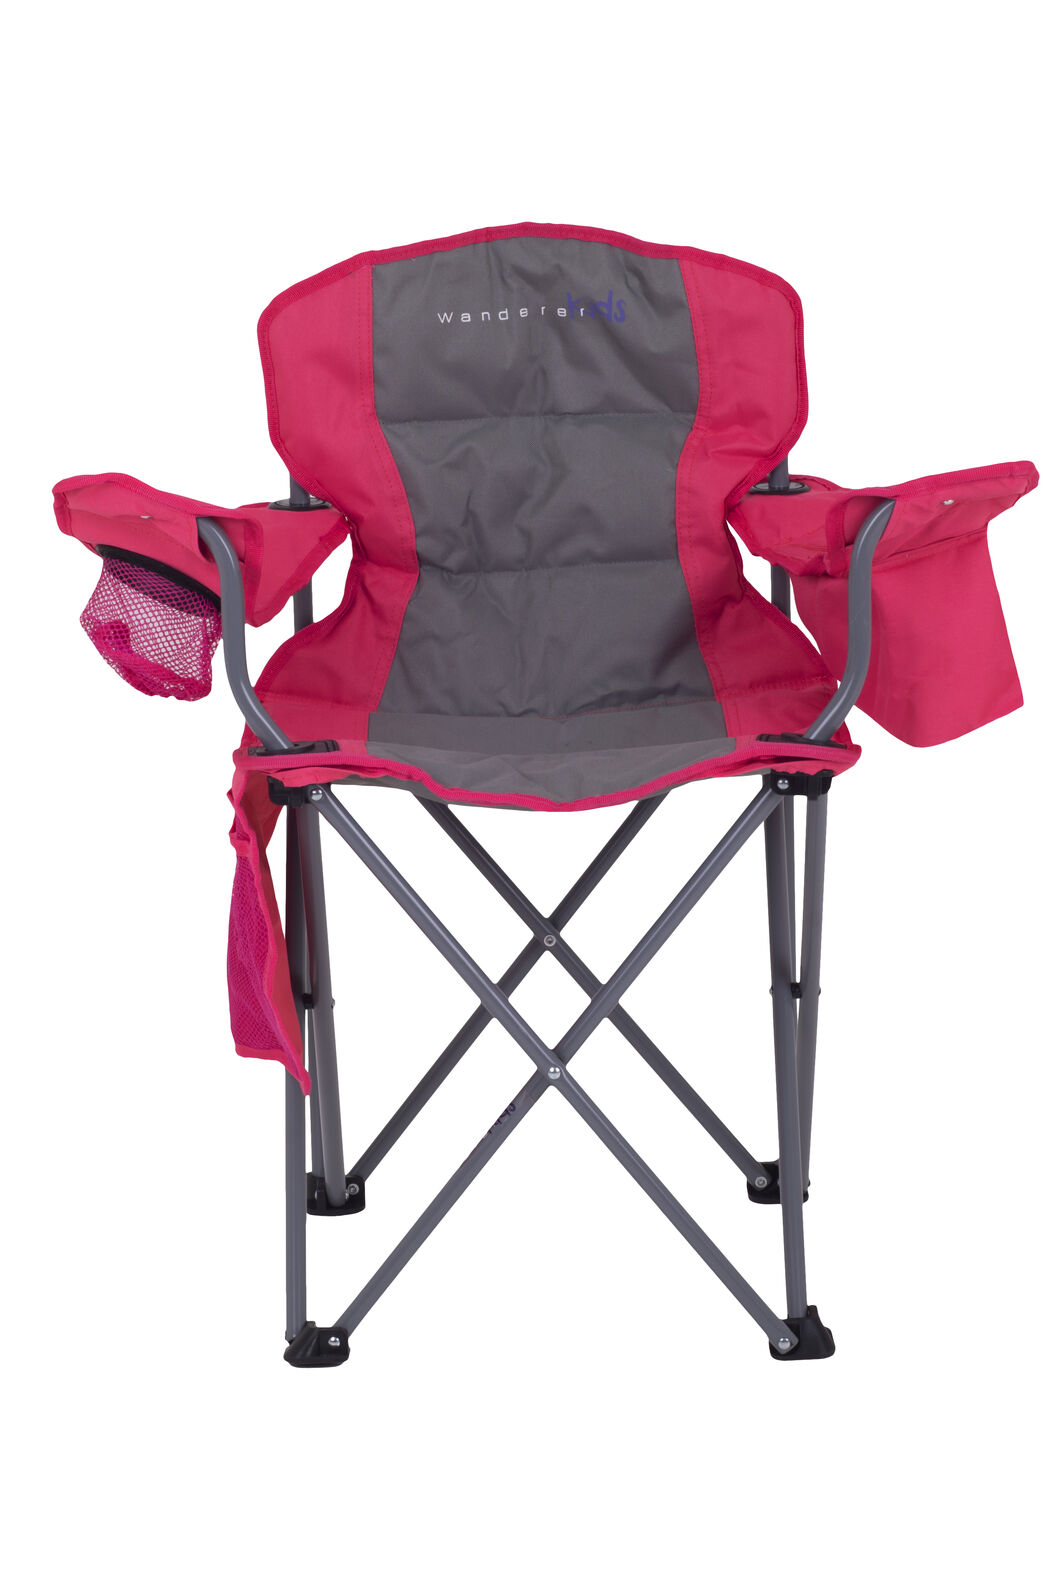 Wanderer Cooler Arm Chair Kids, Pink, hi-res